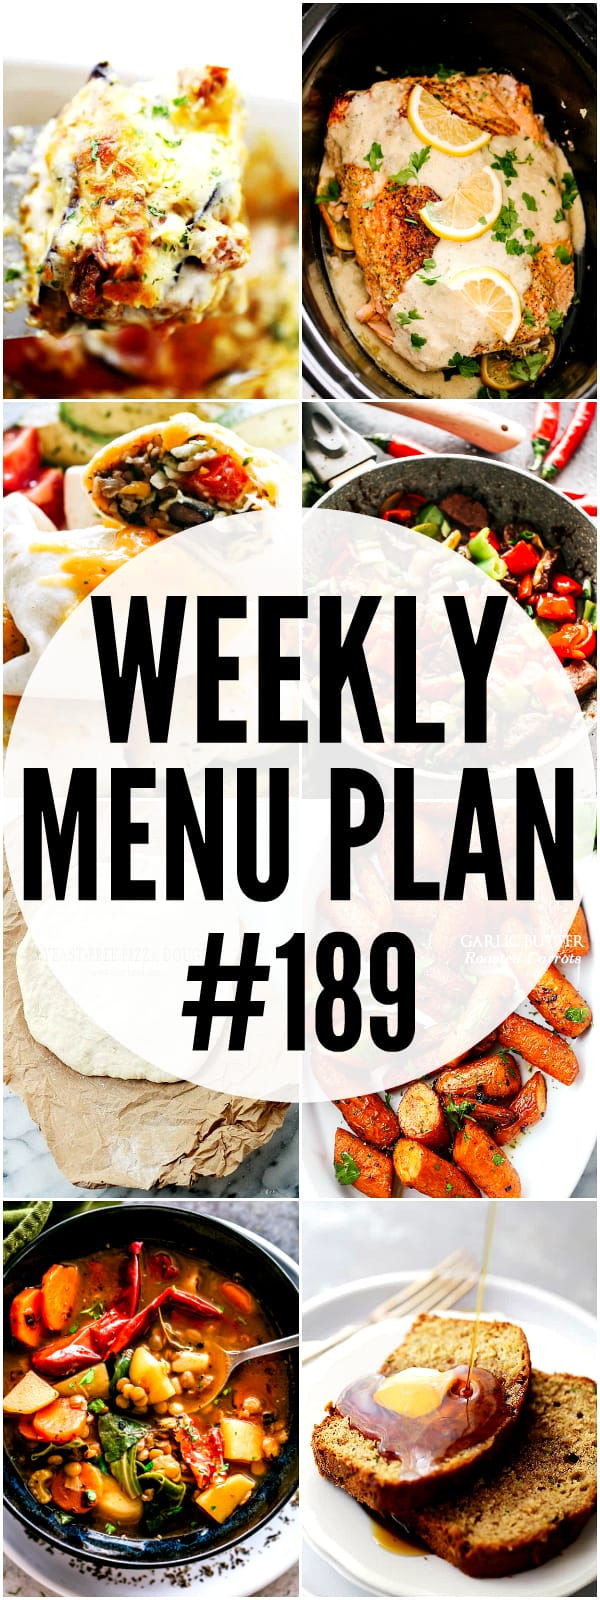 WEEKLY MENU PLAN 189